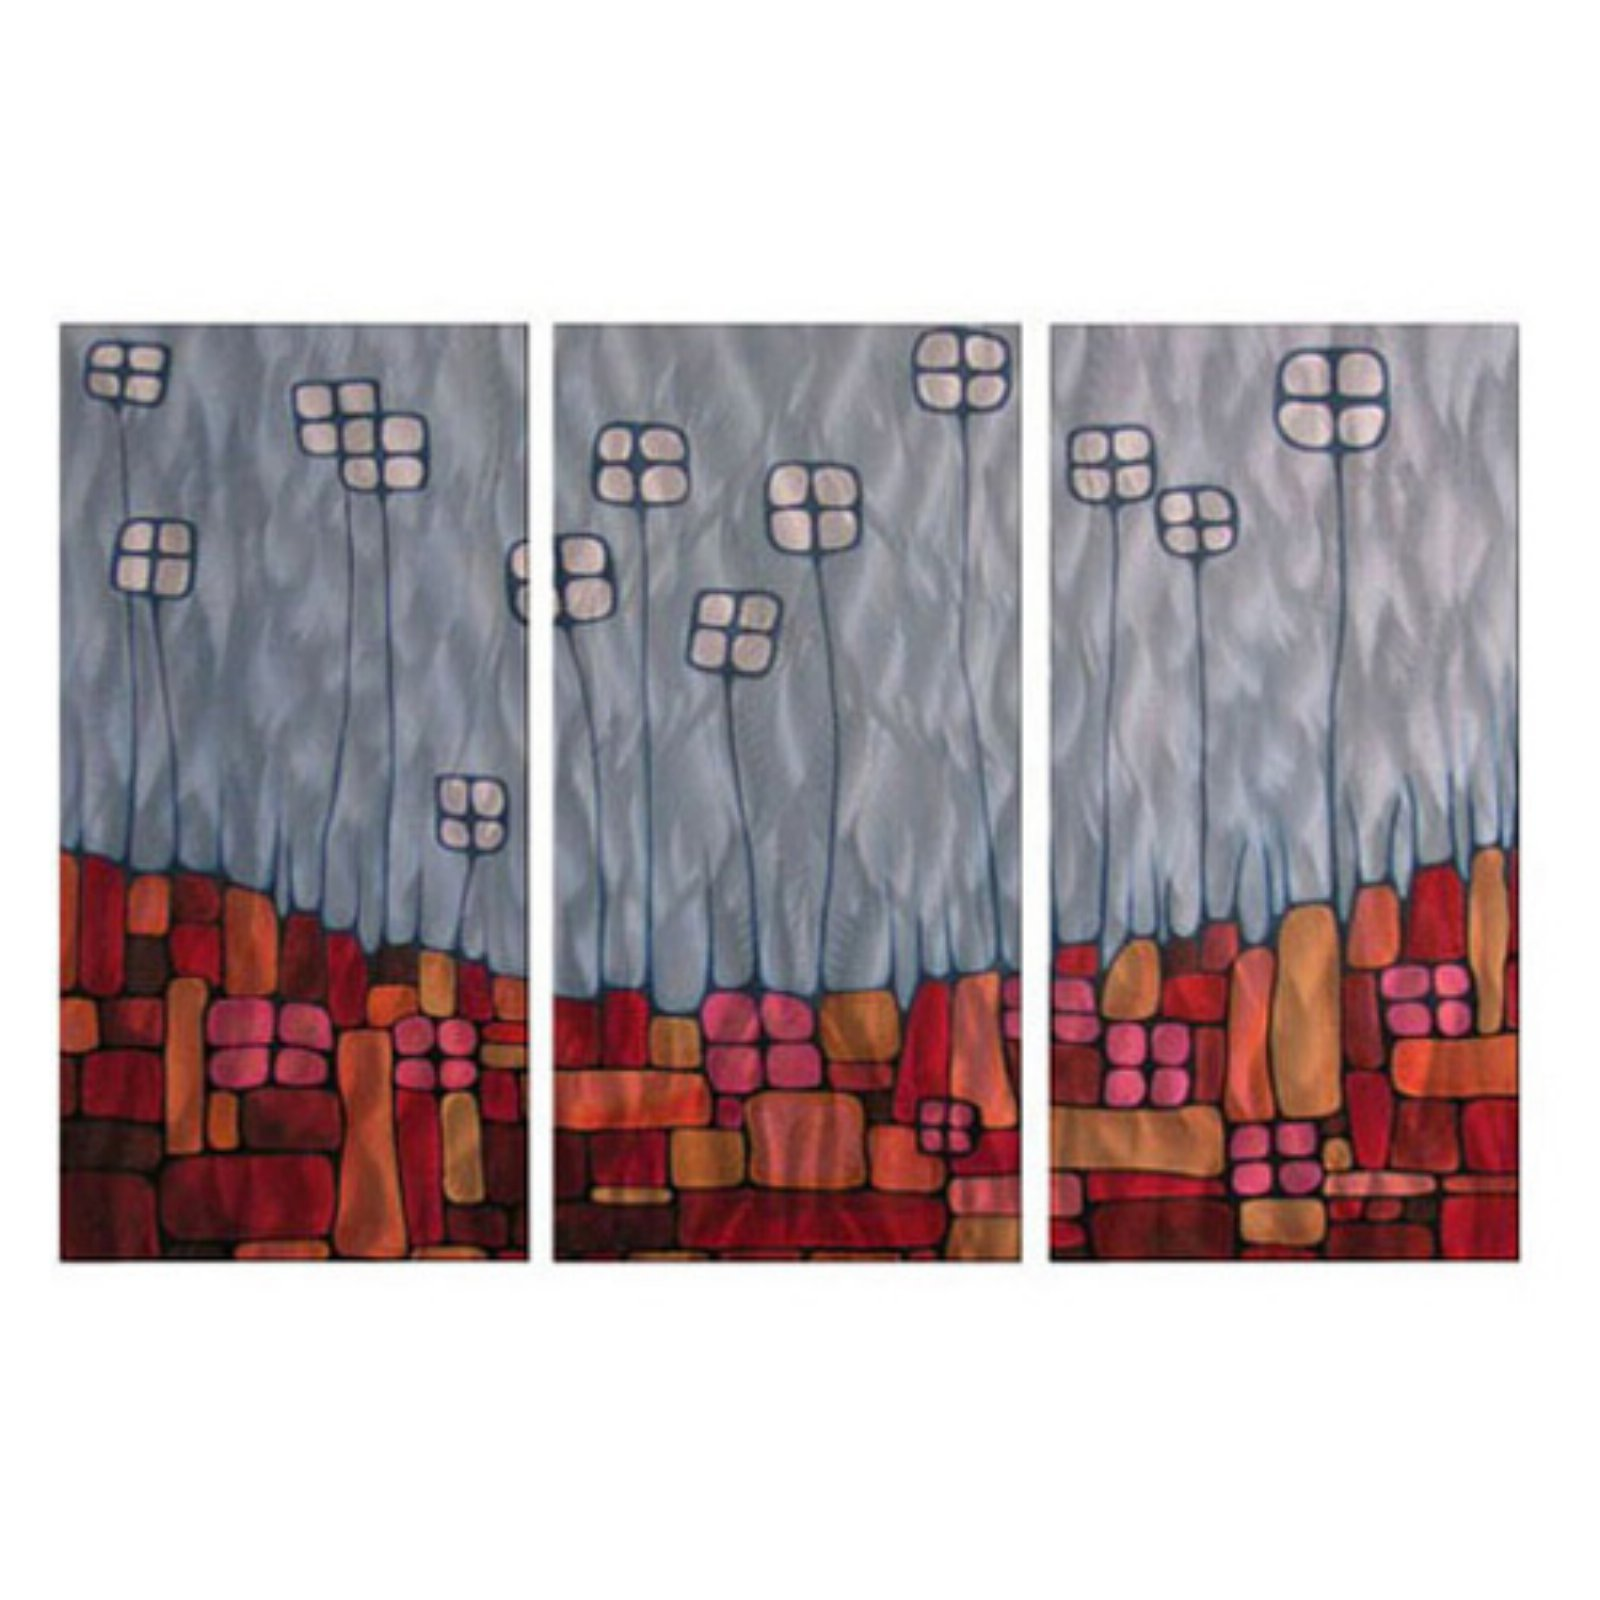 Recepticles Metal Wall Art - Set of 3 - 38W x 23.5H in.